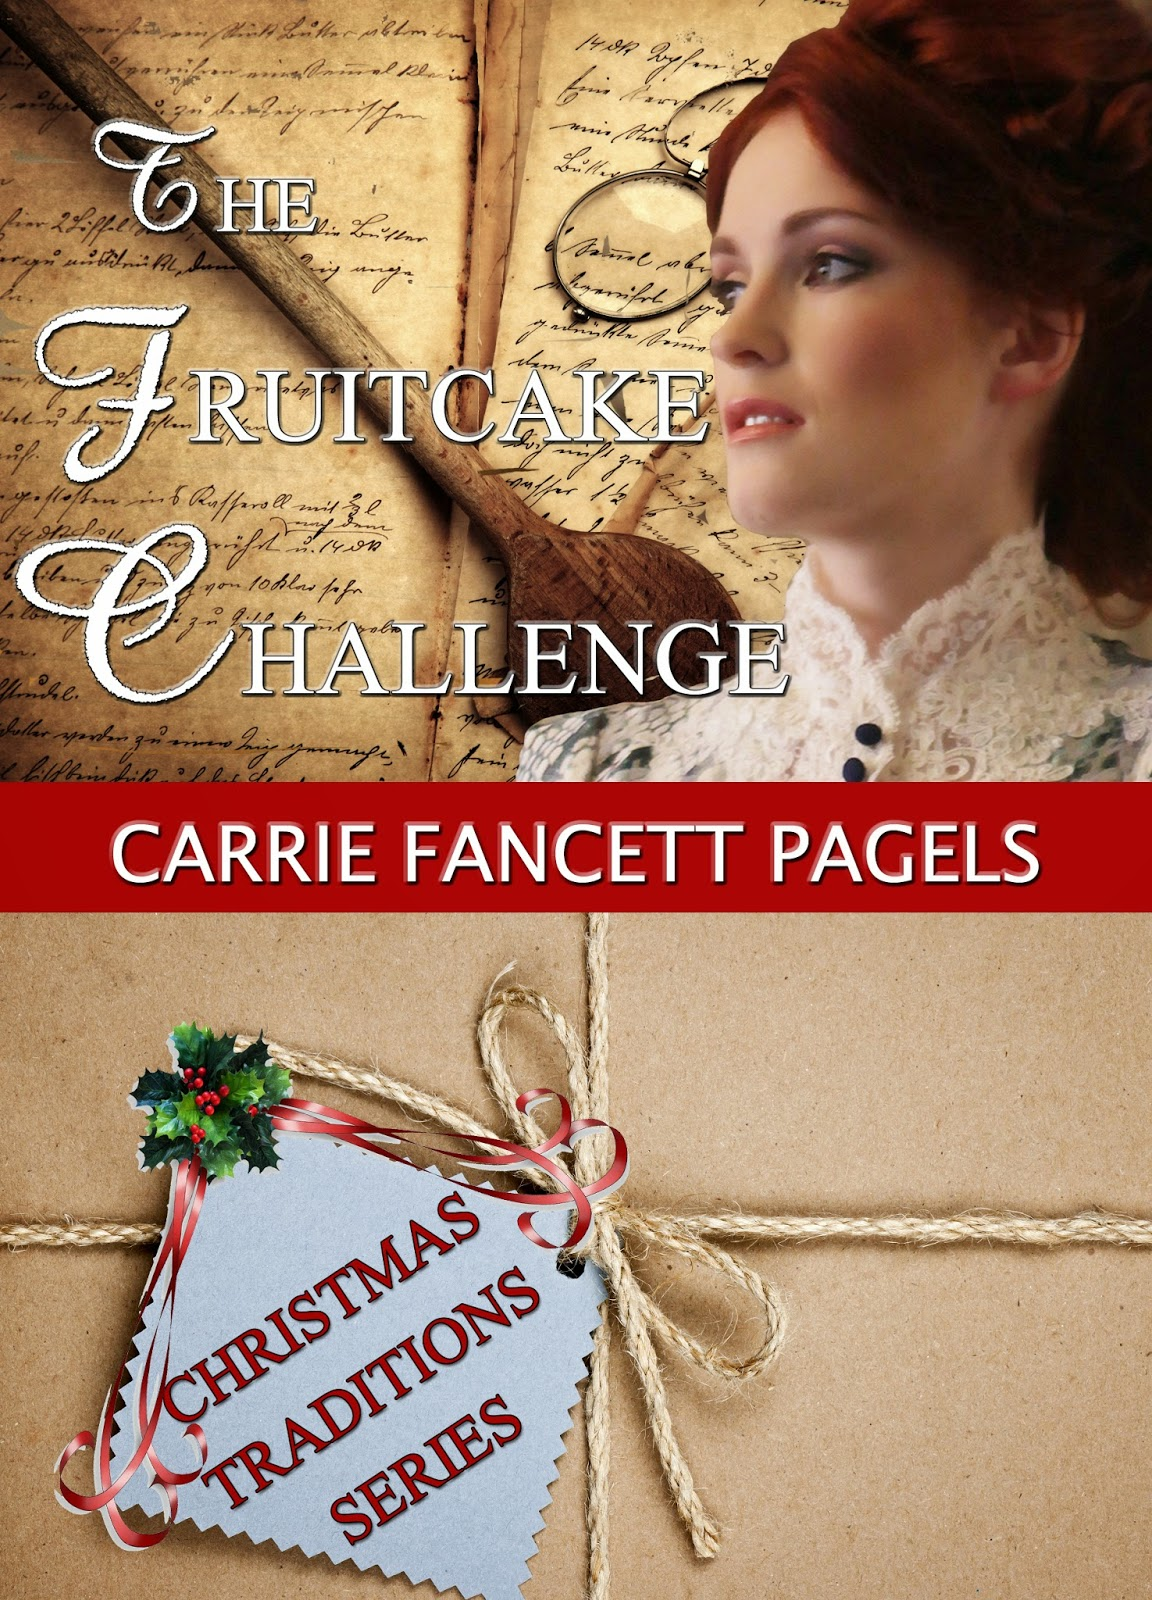 Enter The Fruitcake Challenge Giveaway